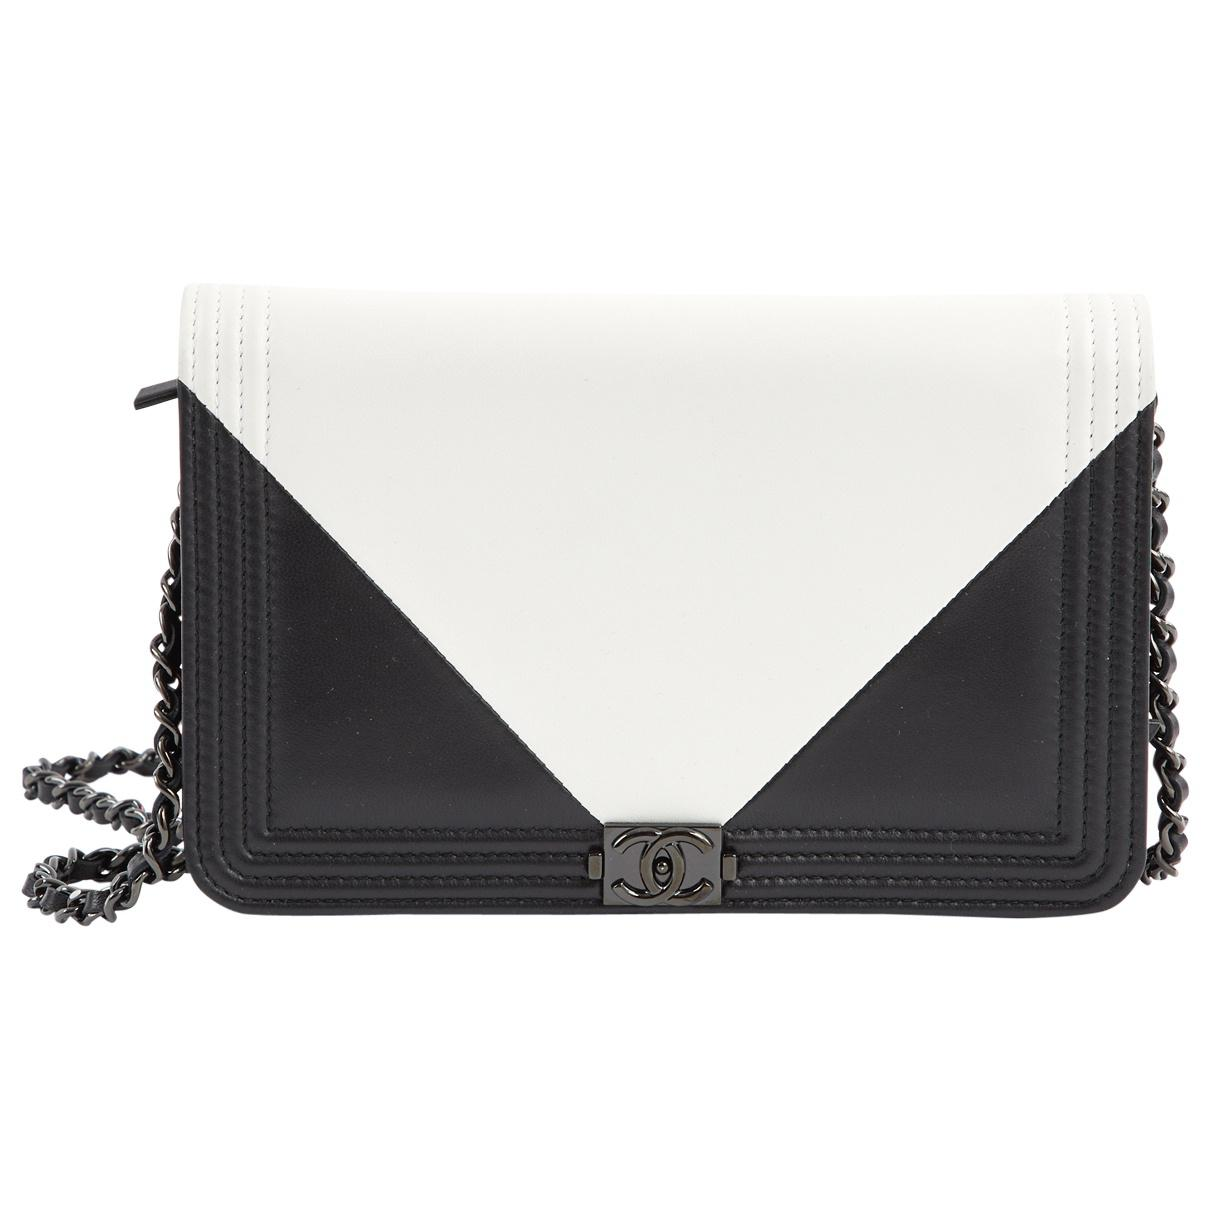 4024f42e3913 Chanel. Women's Pre-owned Boy Black Leather Clutch Bags. £2,500 £2,259 From Vestiaire  Collective